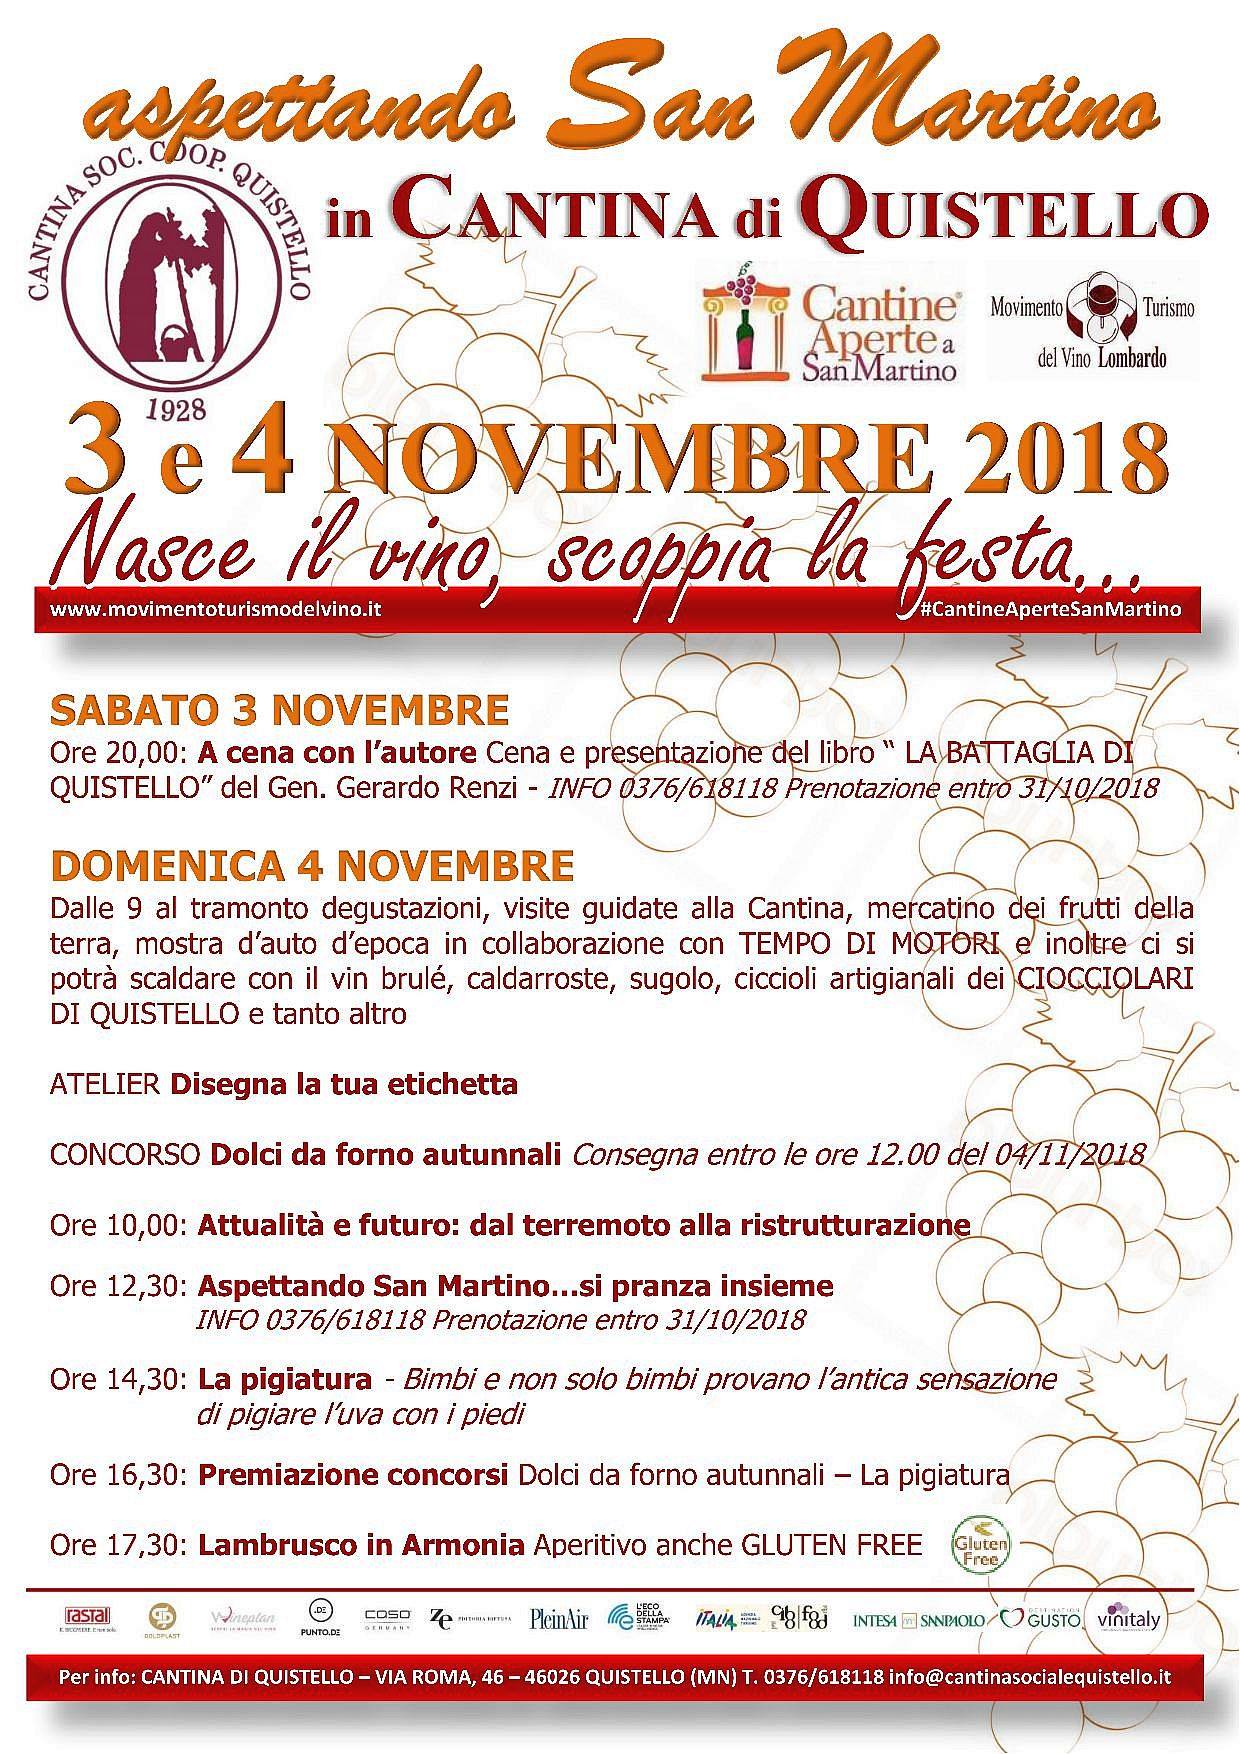 Quistello – San Martino in cantina 2018